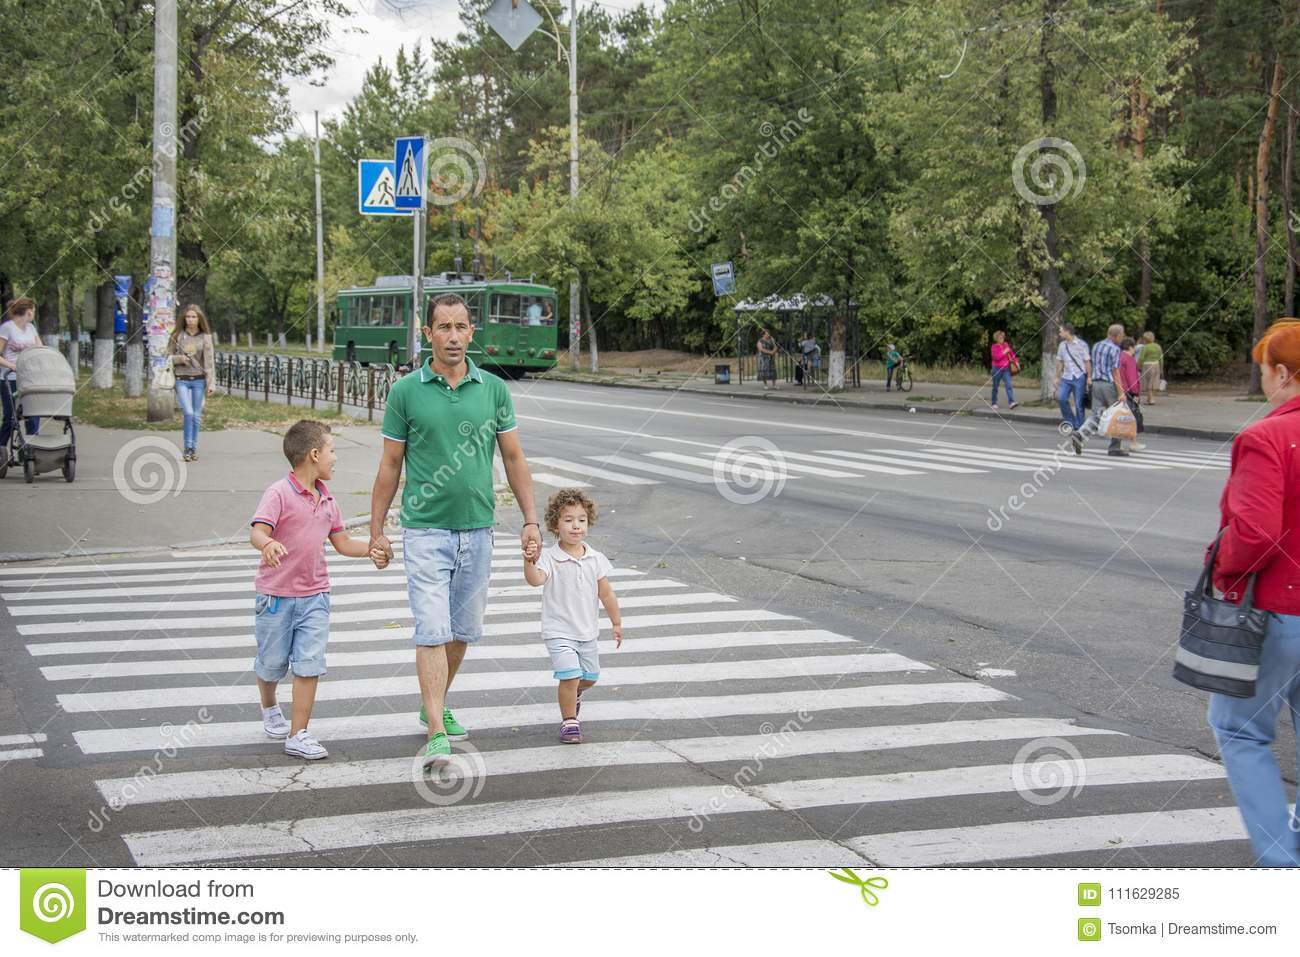 Kiev. In summer, at the pedestrian crossing, the father and children cross the road.